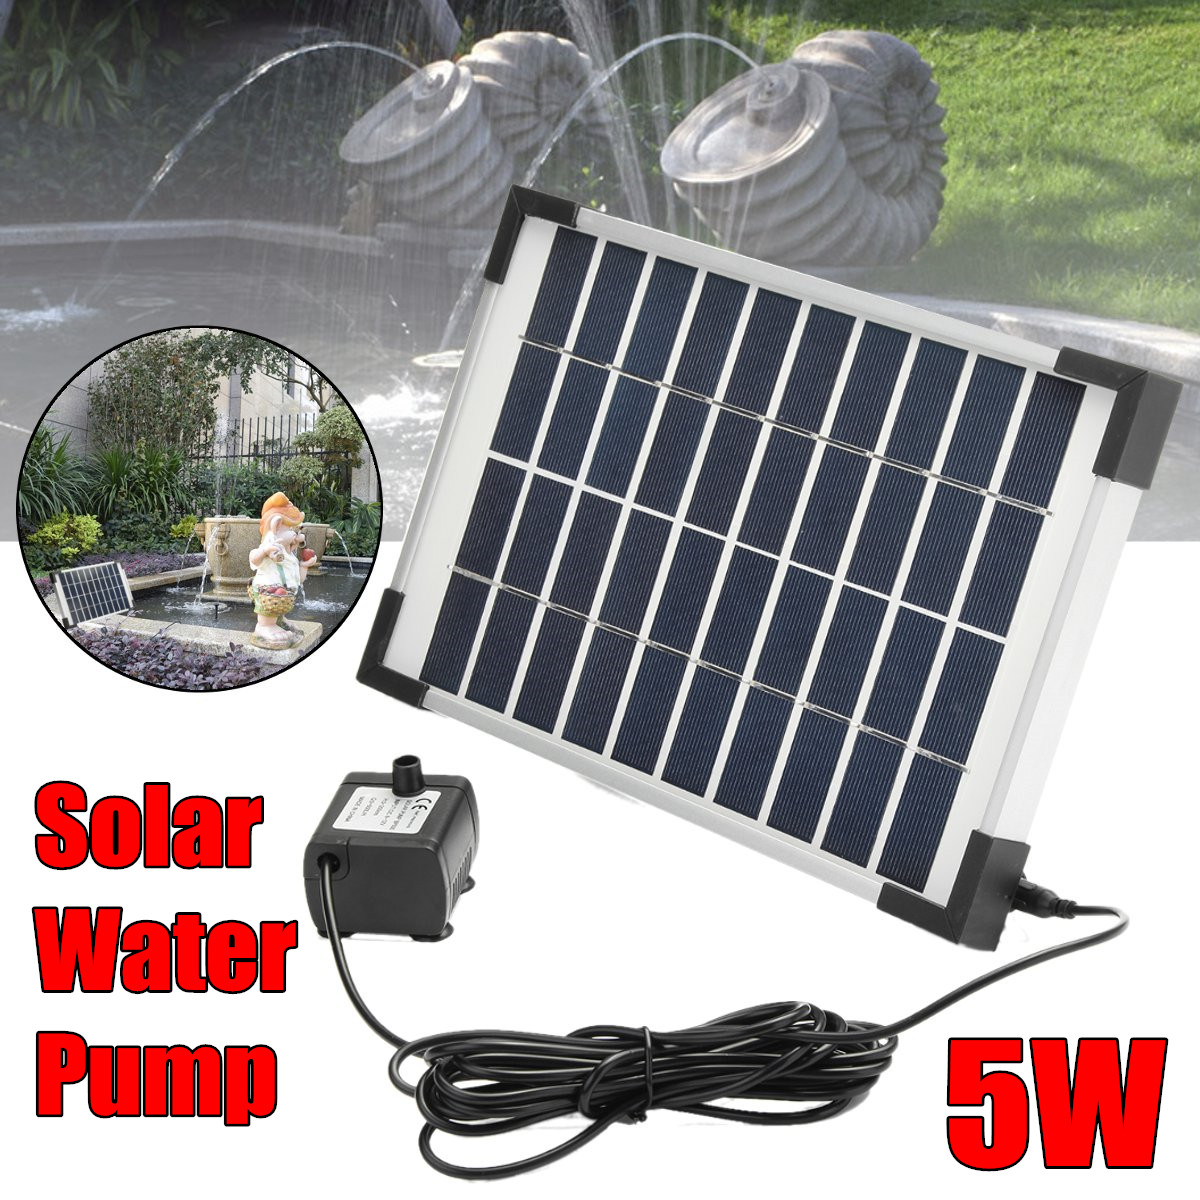 5W 500L/H Micro Solar Energy Fountain Pump Mini Water Pump For Pond Fountain Rockery Fountain Garden Fountain Garden Decor5W 500L/H Micro Solar Energy Fountain Pump Mini Water Pump For Pond Fountain Rockery Fountain Garden Fountain Garden Decor